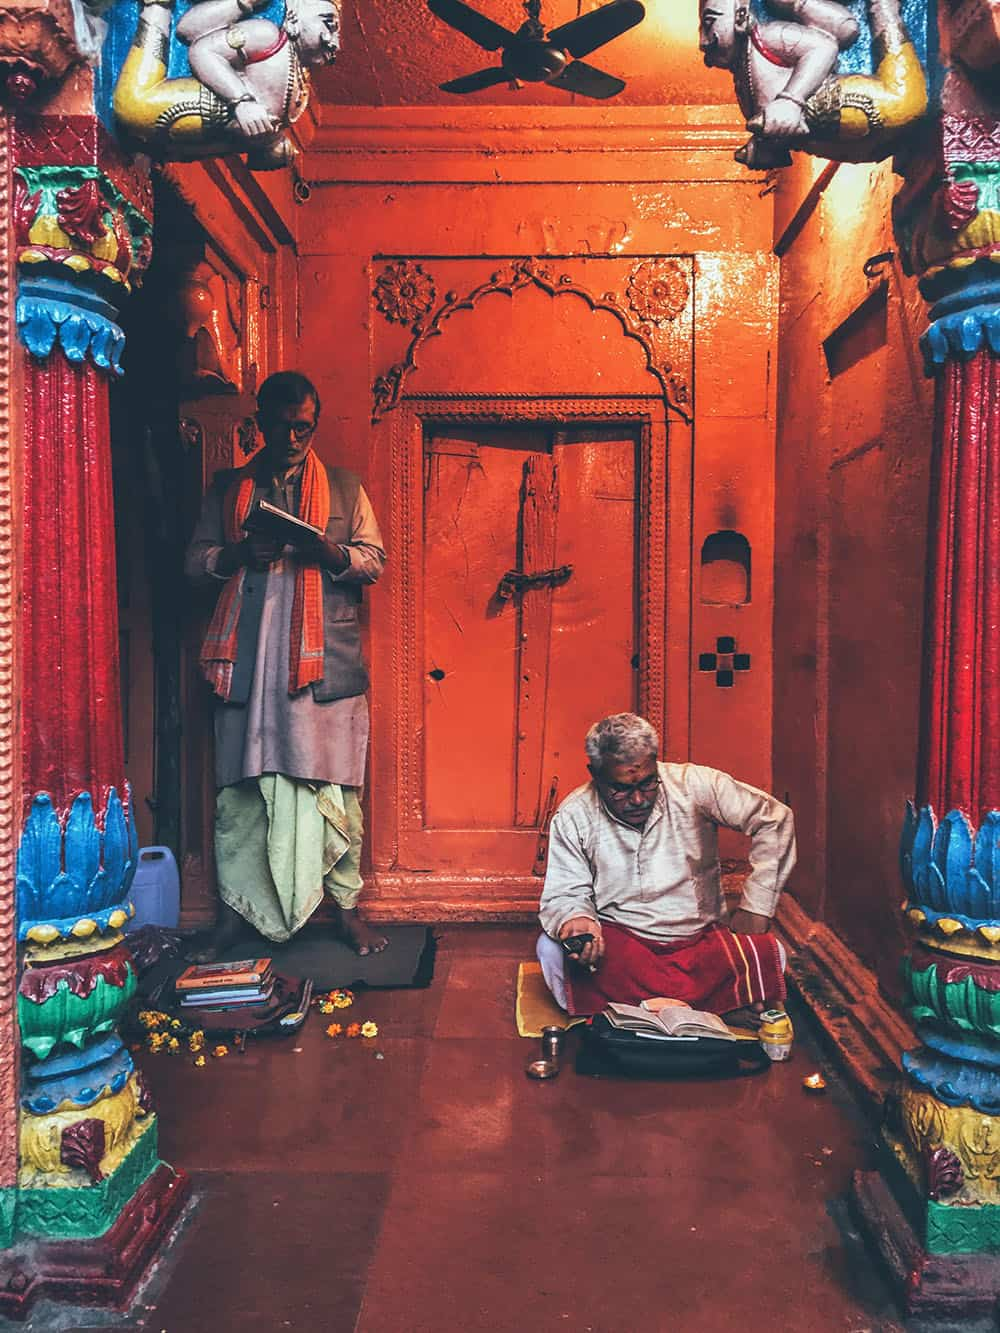 Traveler Tuesday - Divsi of Quirky Wanderer A temple in Varanasi India